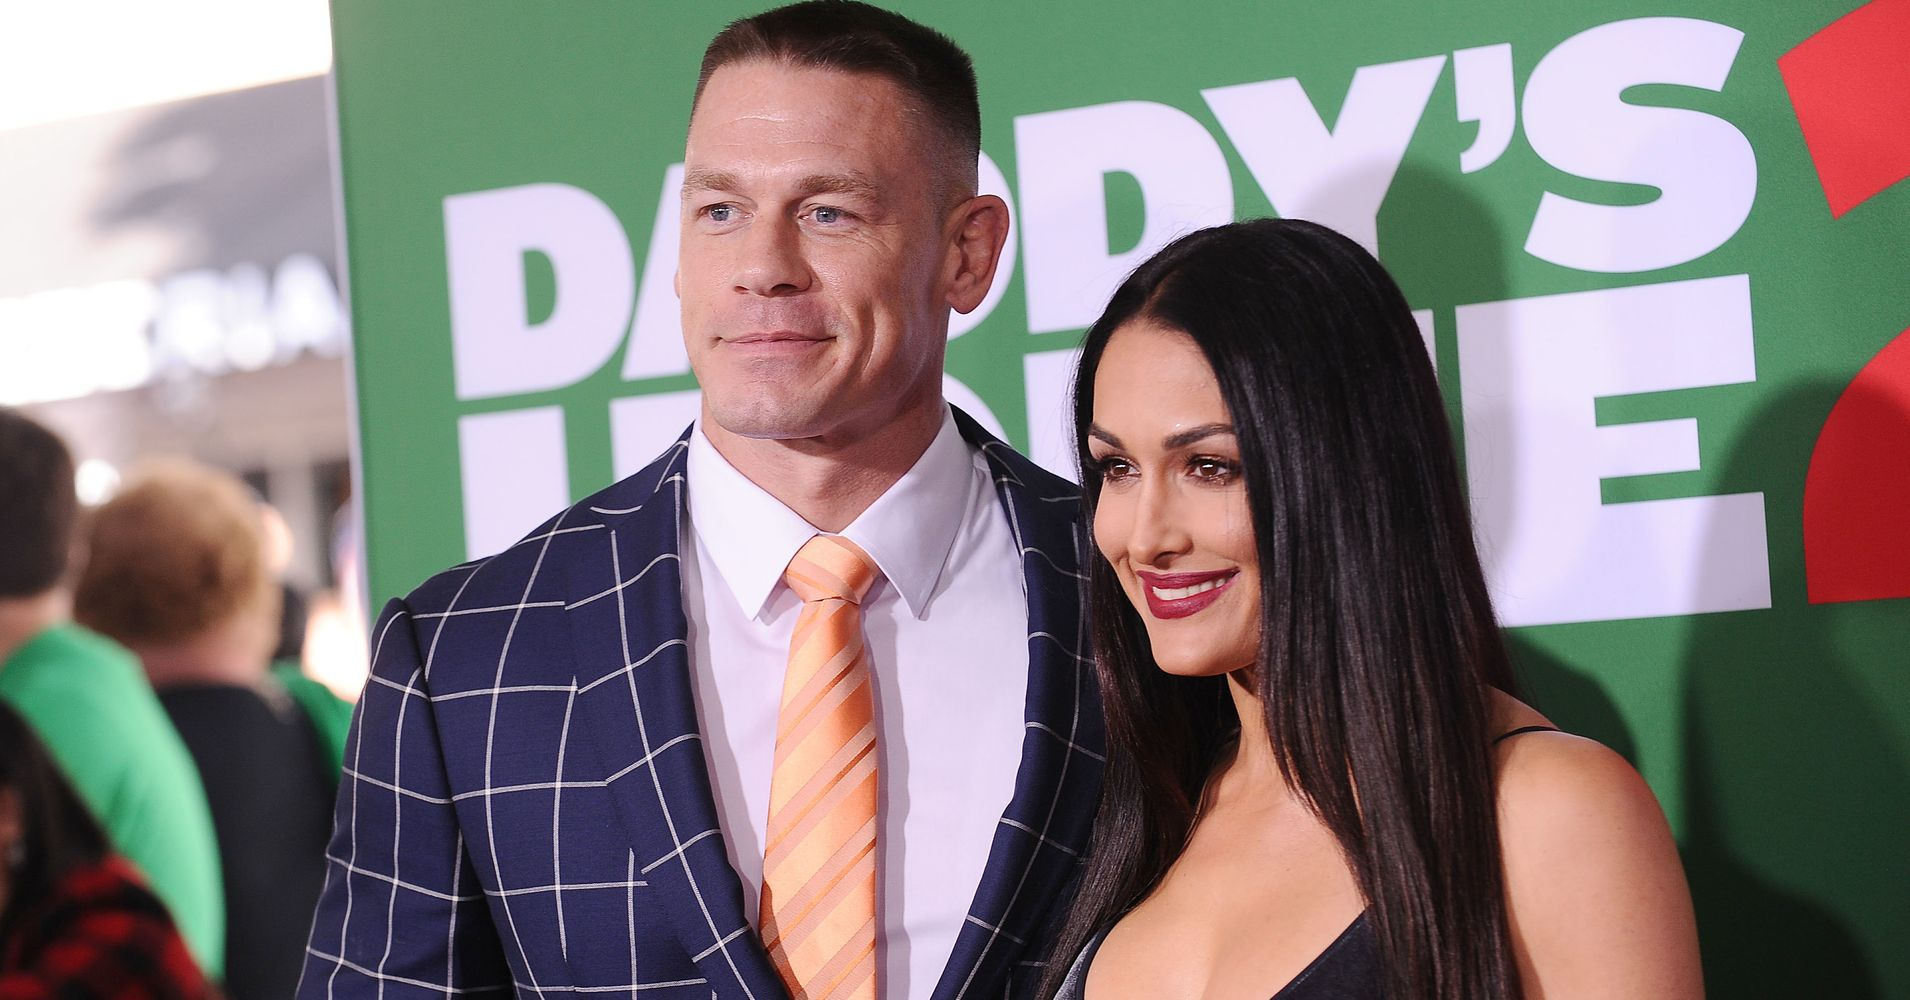 John Cena And Nikki Bella Are \'Officially\' Back Together: Reports ...